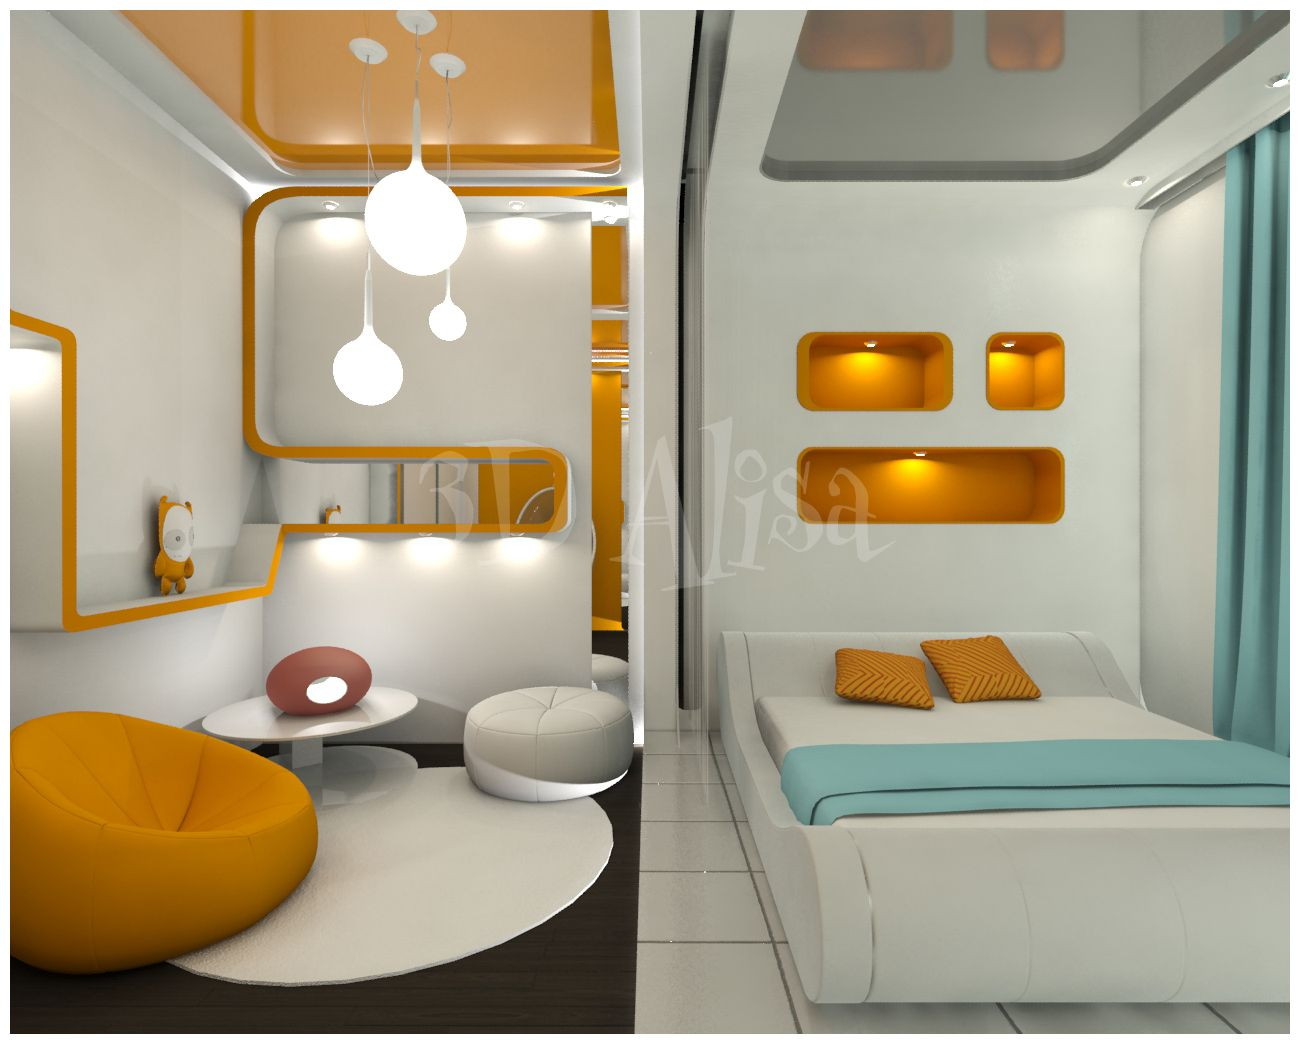 Bedroom Design Best Futuristic Bedroom Design In Your House No Headboard  With Orange Storage And Blue Bed Cover And Curtain : Amazing Futuristic  Bedroom ...